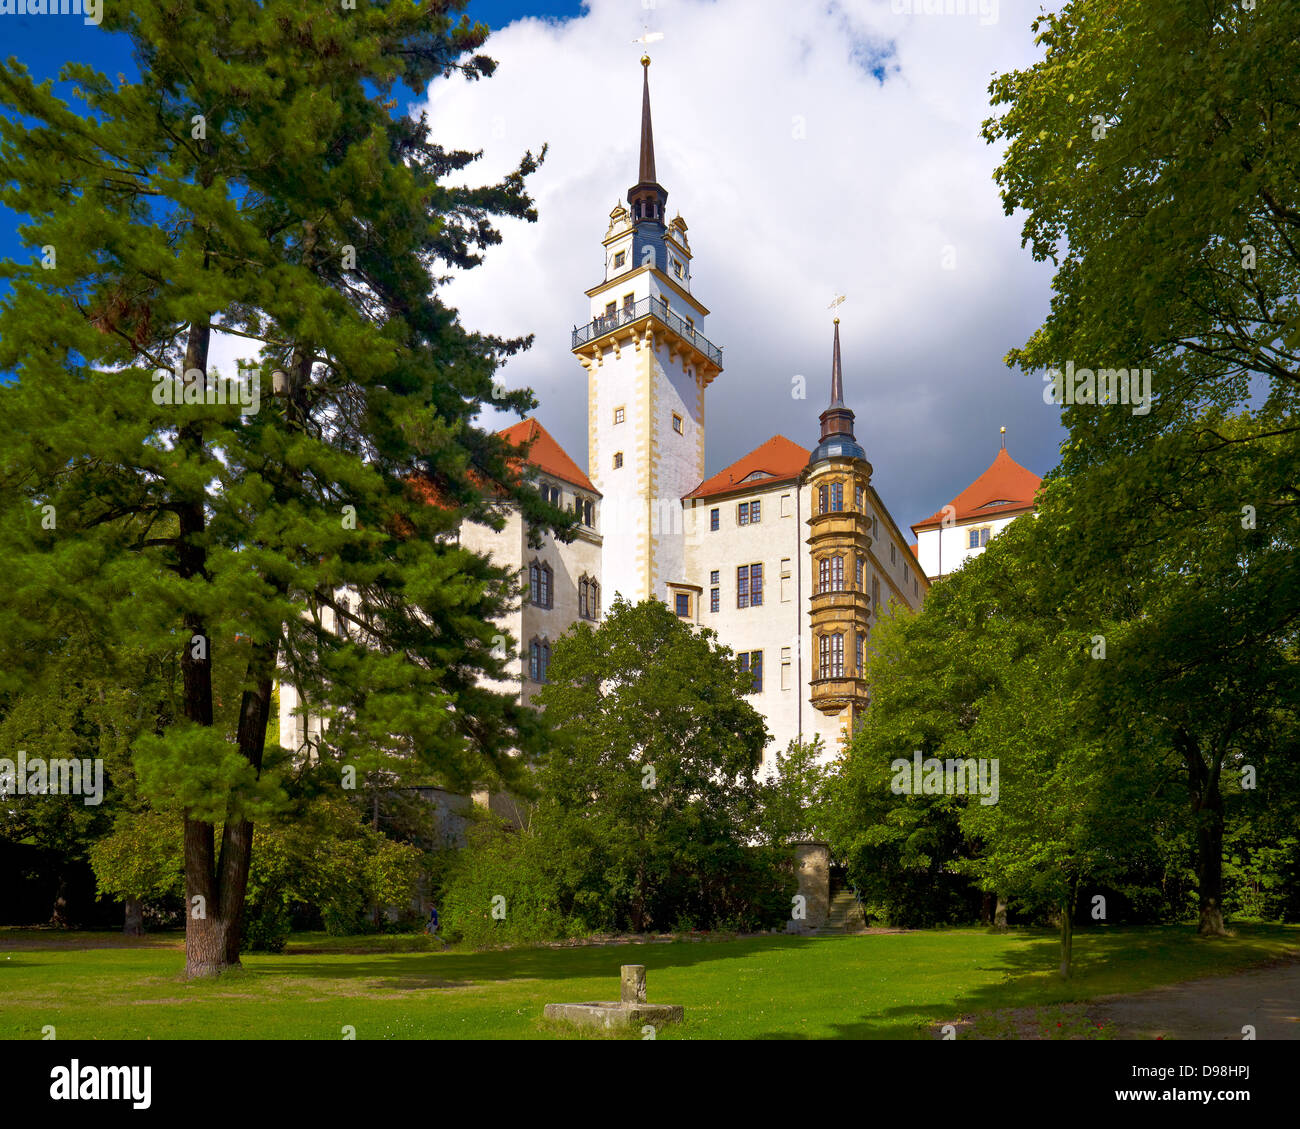 Hartenfels Castle with Hausmann Tower, Torgau, Saxony Germany Stock Photo